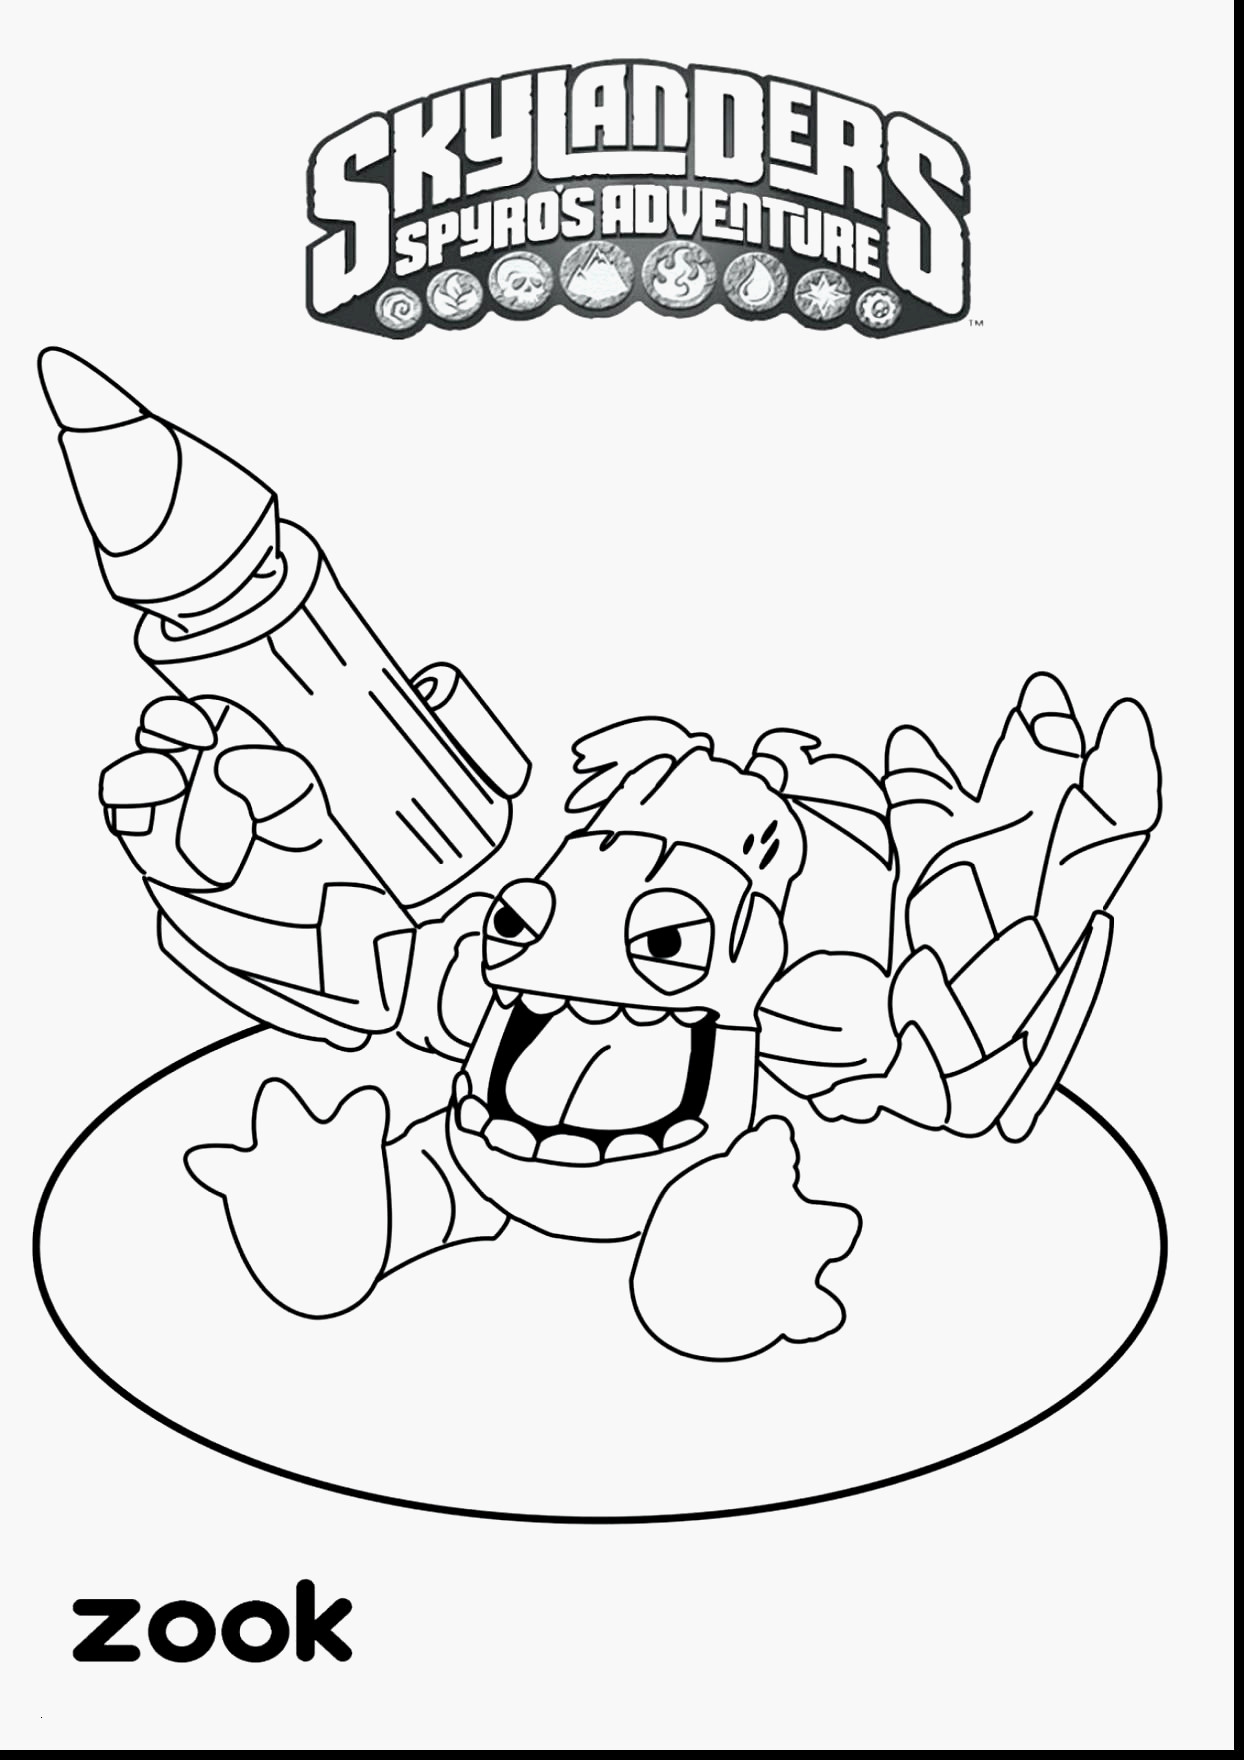 Cartoon Monkey Coloring Pages  Gallery 4c - To print for your project